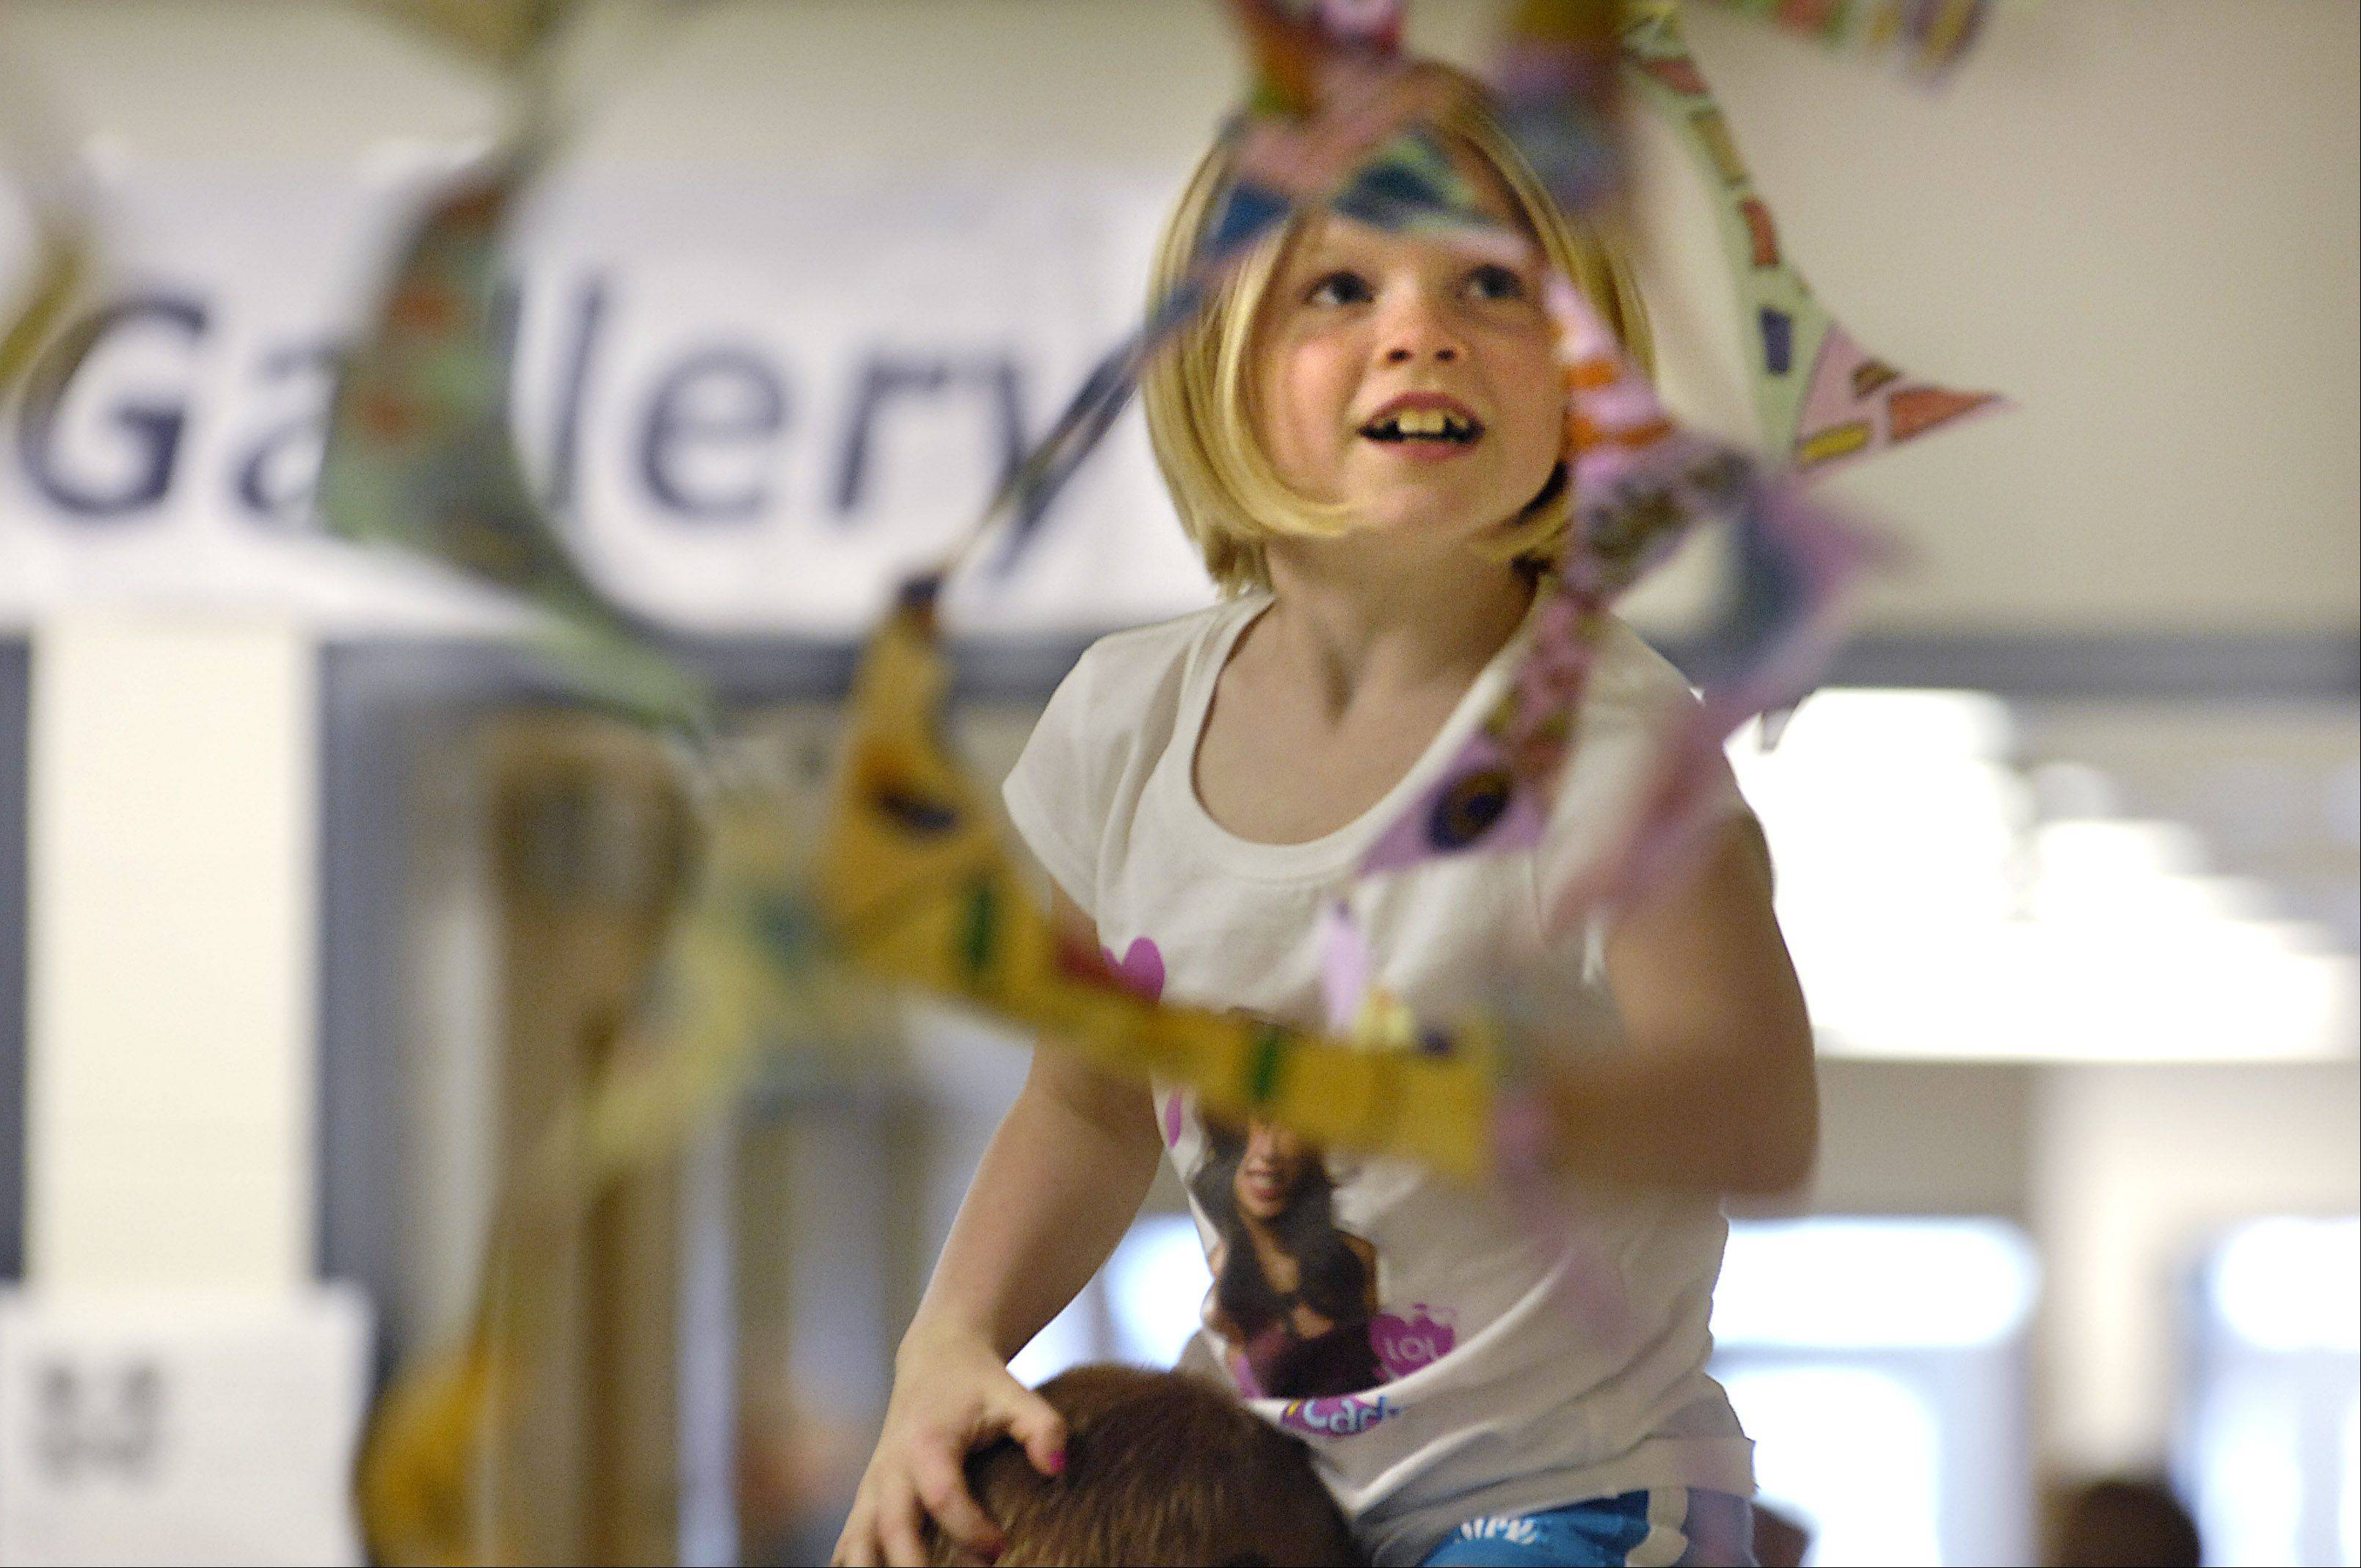 Second-grader Brianna Vestal sits on her dad Don's shoulders to get eye level with her class artwork, a spinner hanging from the Kaneland High School ceiling during a previous Kaneland Community Fine Arts Festival. They are from Sugar Grove.